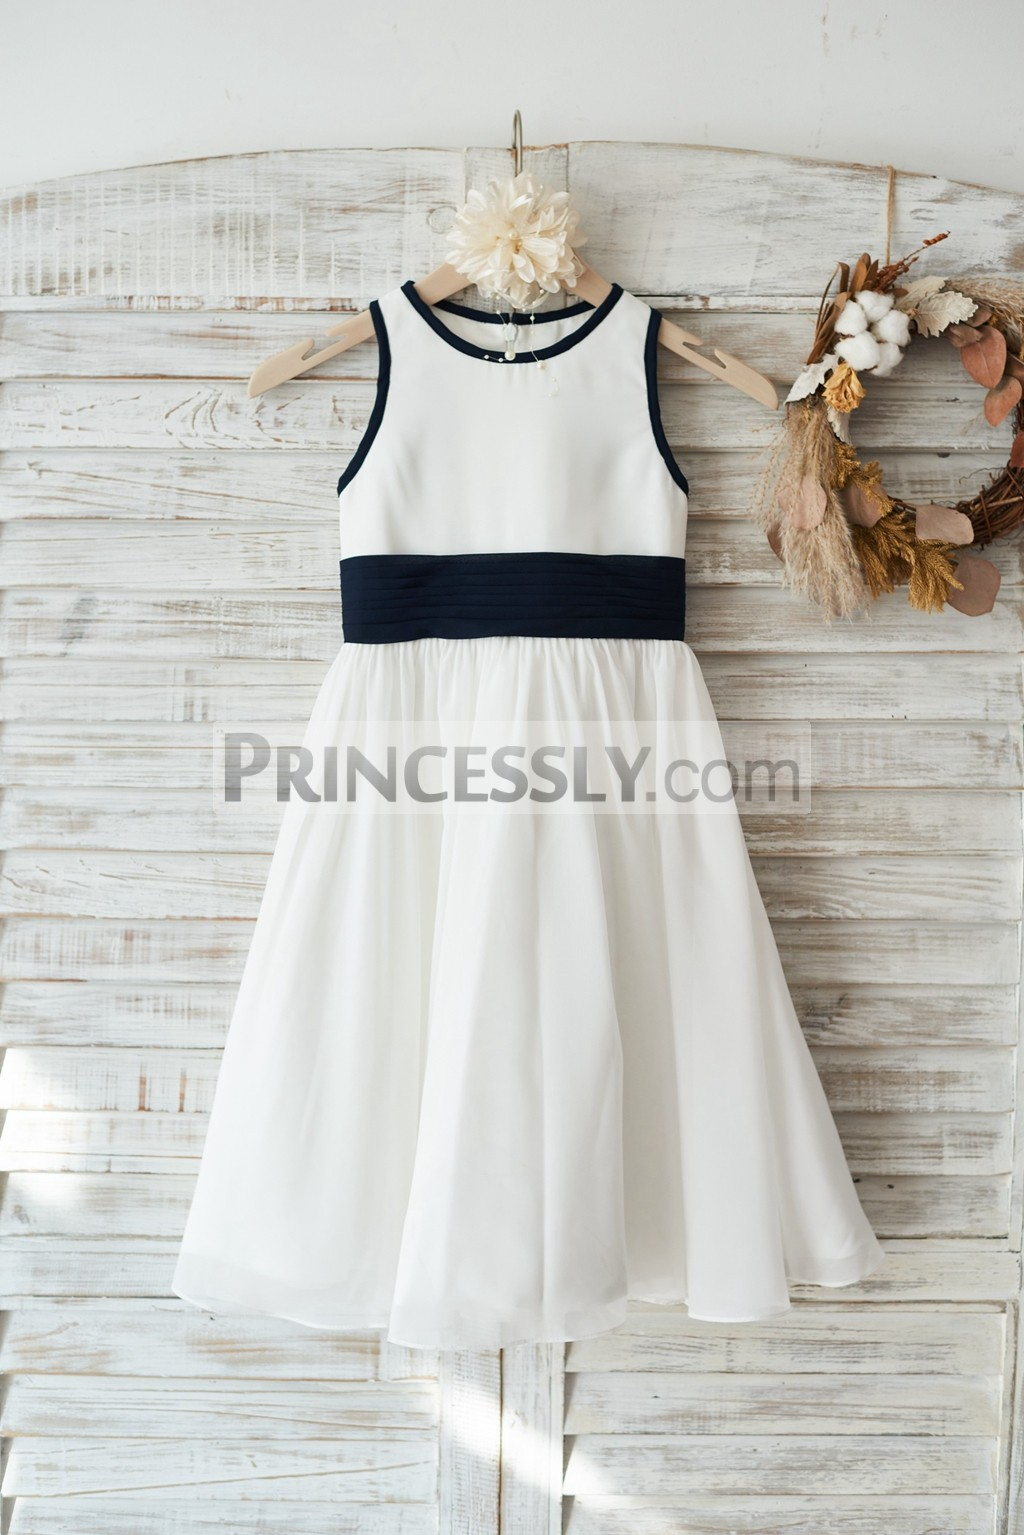 Ivory chiffon wedding flower girl dress junior bridesmaid dress ivory chiffon flower girl dress with navy blue edge and belt ombrellifo Images